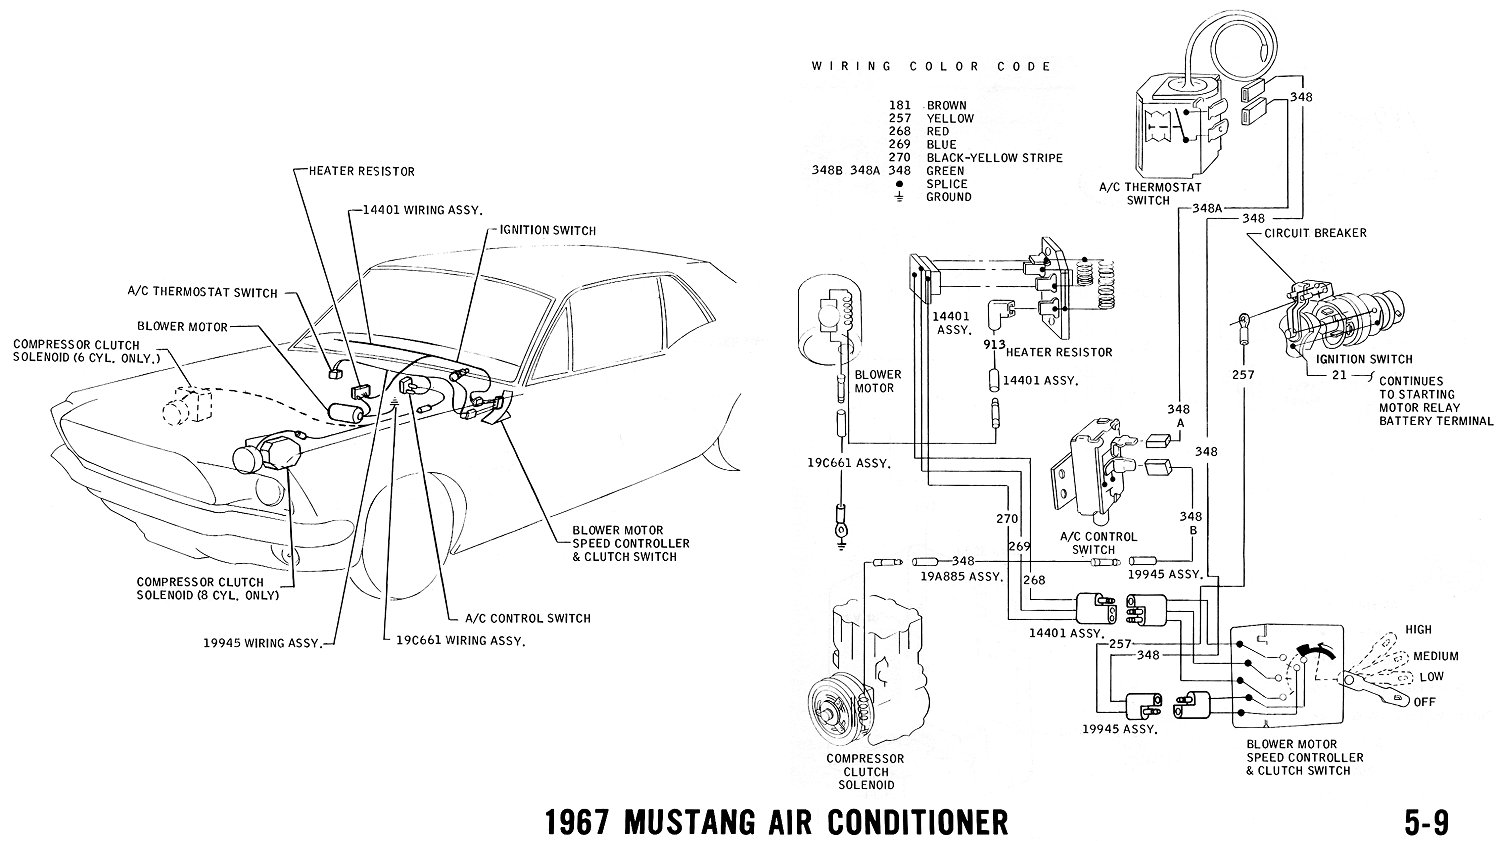 1967 Mustang Door Wiring Diagram Free For You Mercury Cougar Ignition And Vacuum Diagrams Average Joe Restoration Rh Averagejoerestoration Com Dash Switch